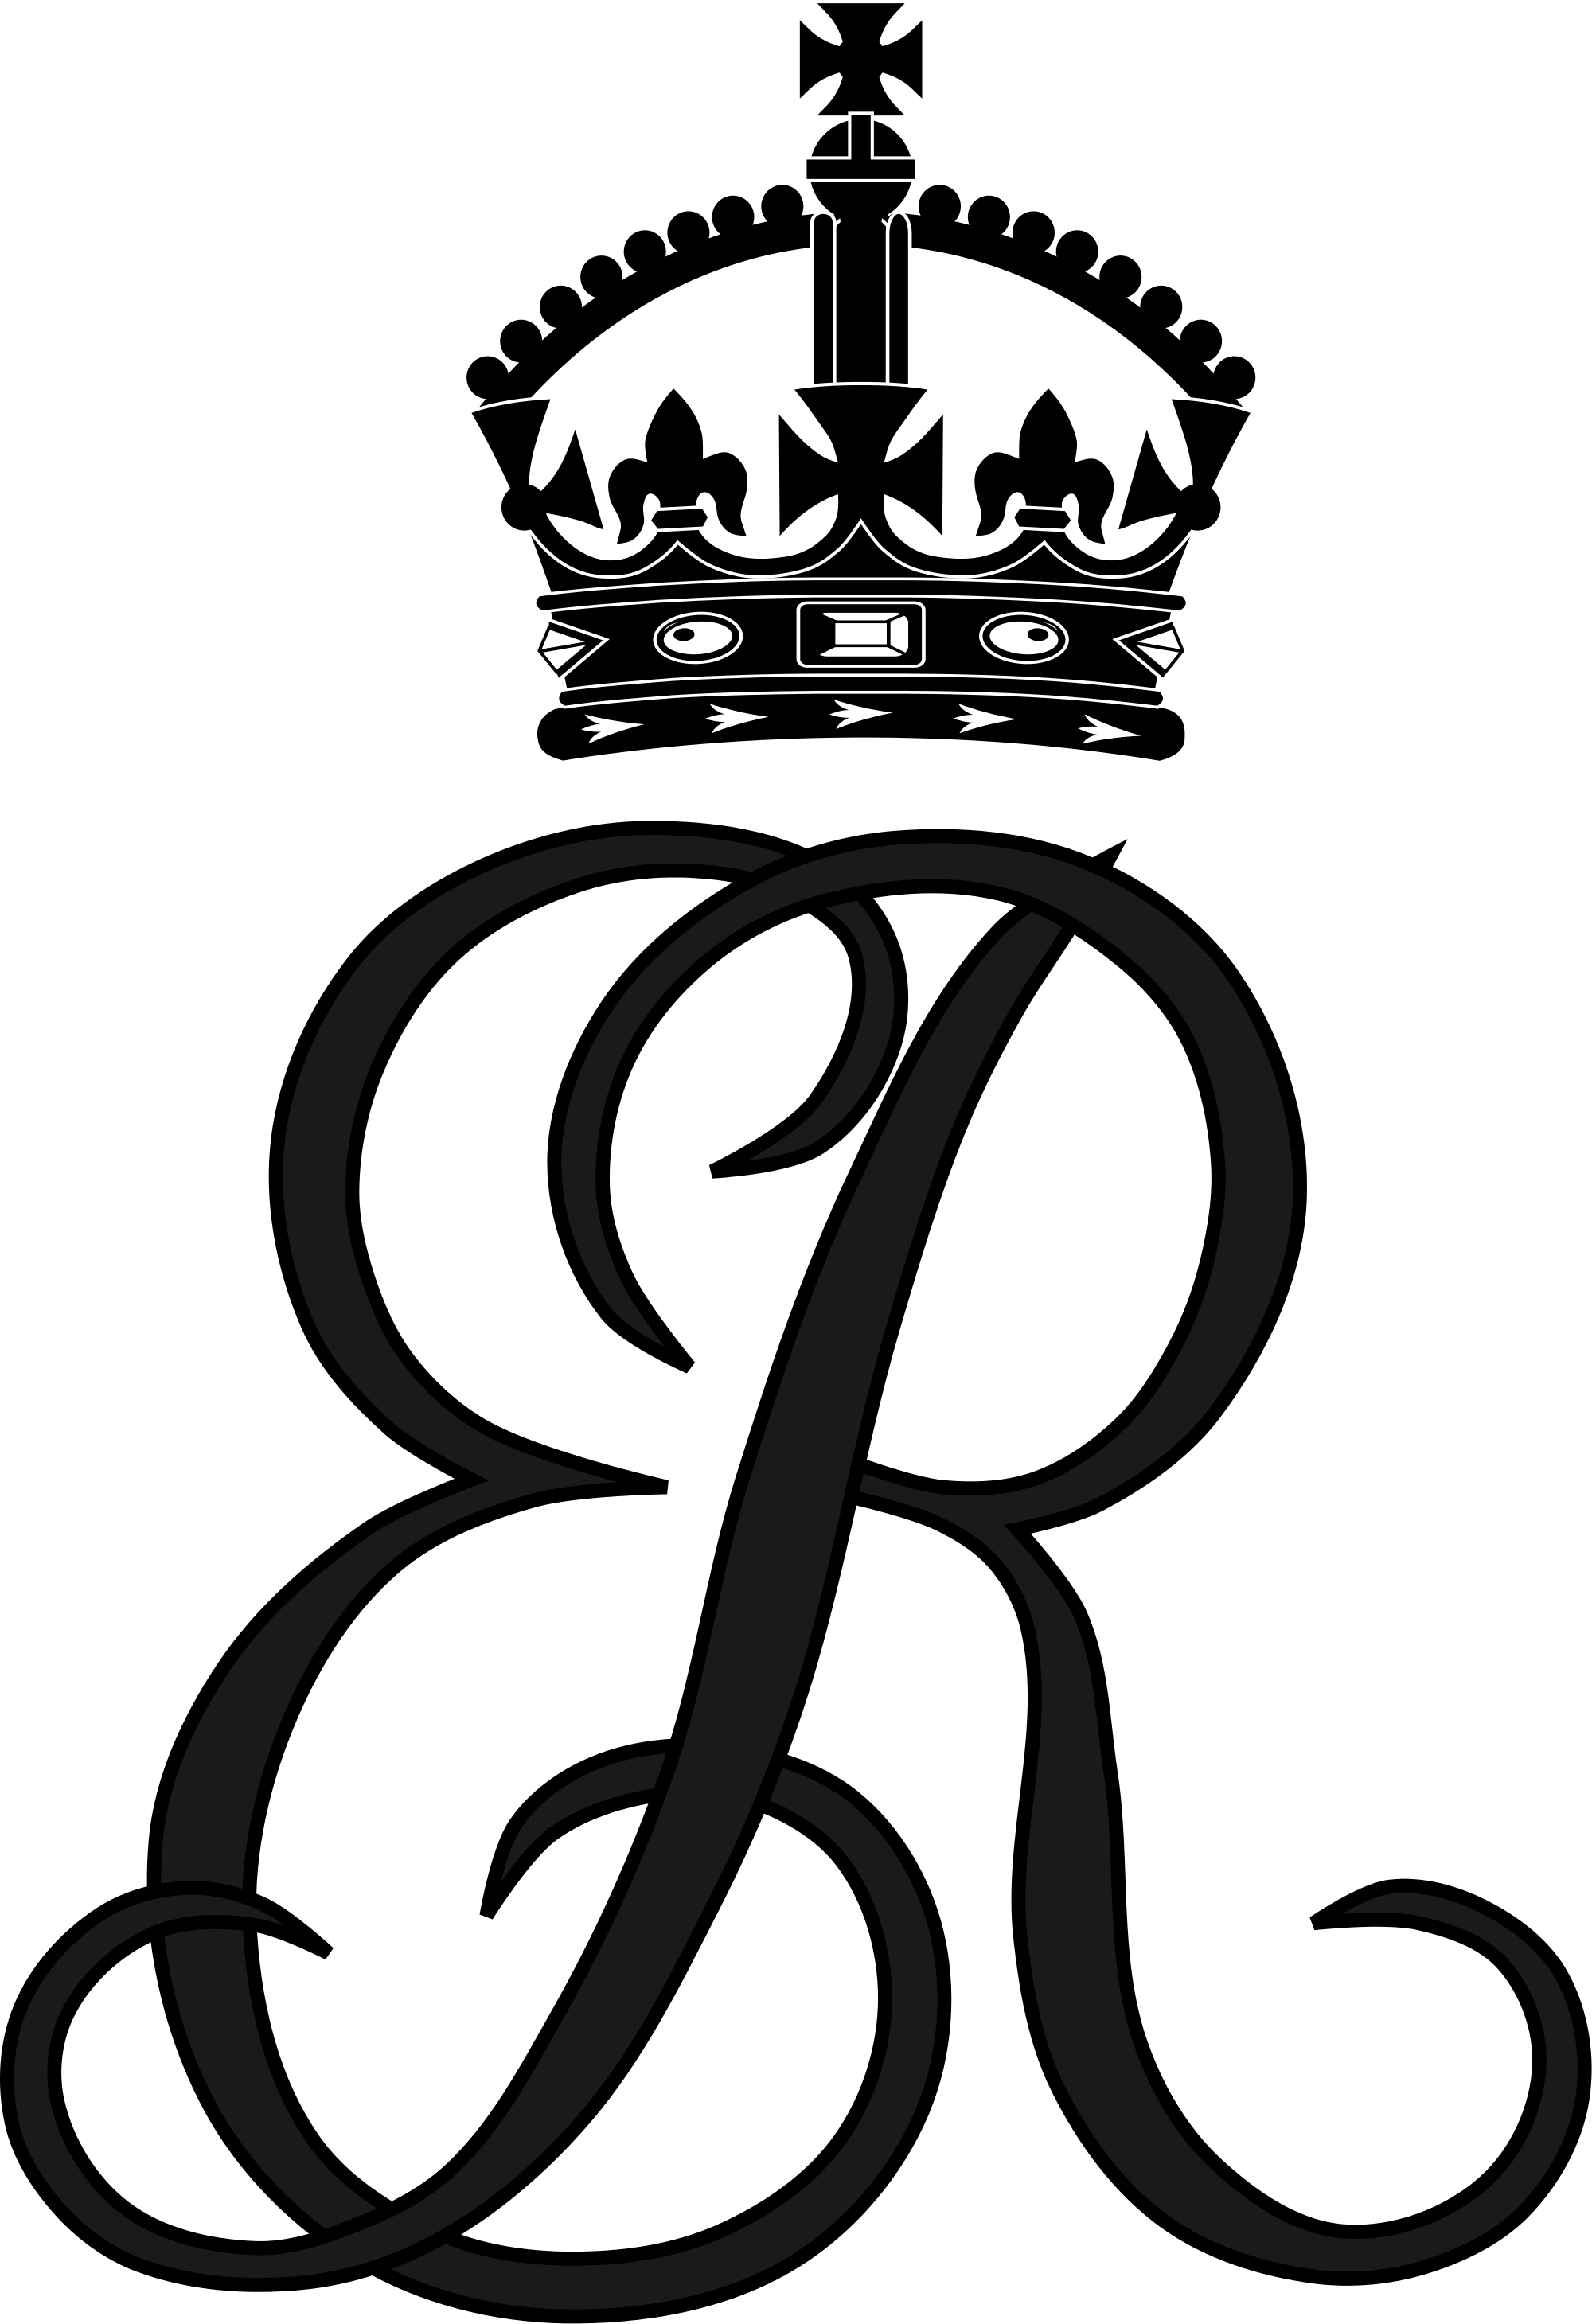 R clipart monogram. File royal of queen